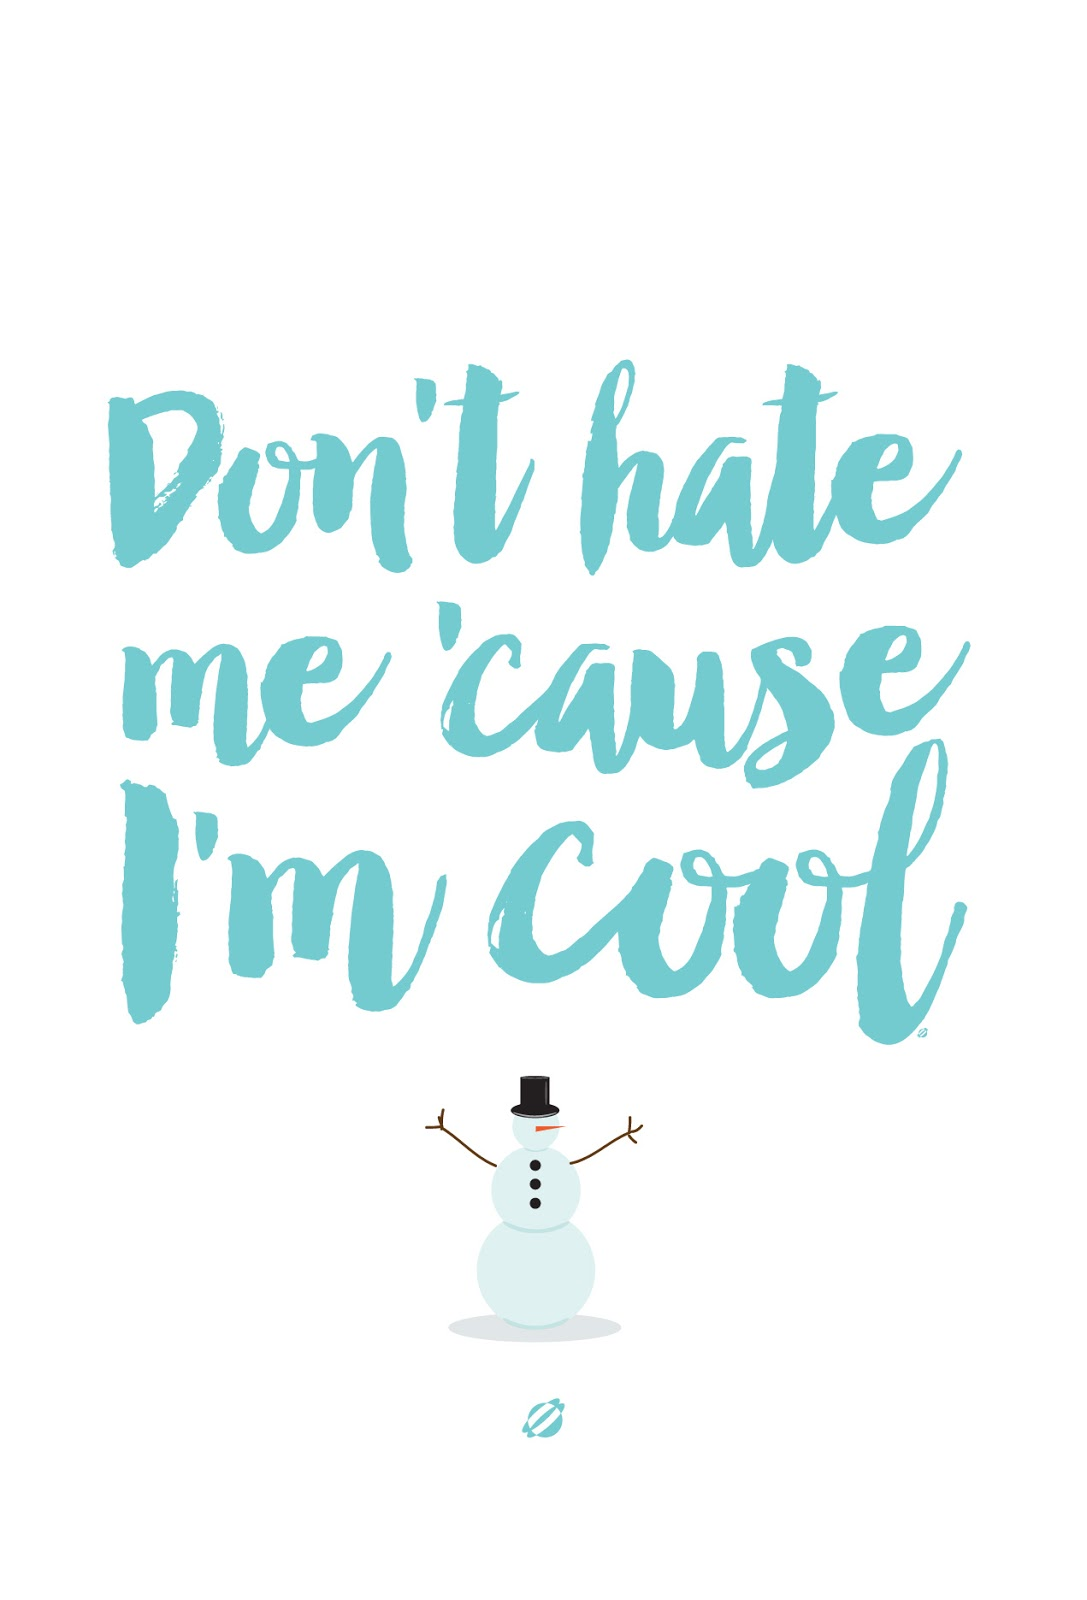 LostBumblebee ©2015 Don't Hate Me 'Cause I'm Cool | Free Printable | Personal Use Only.